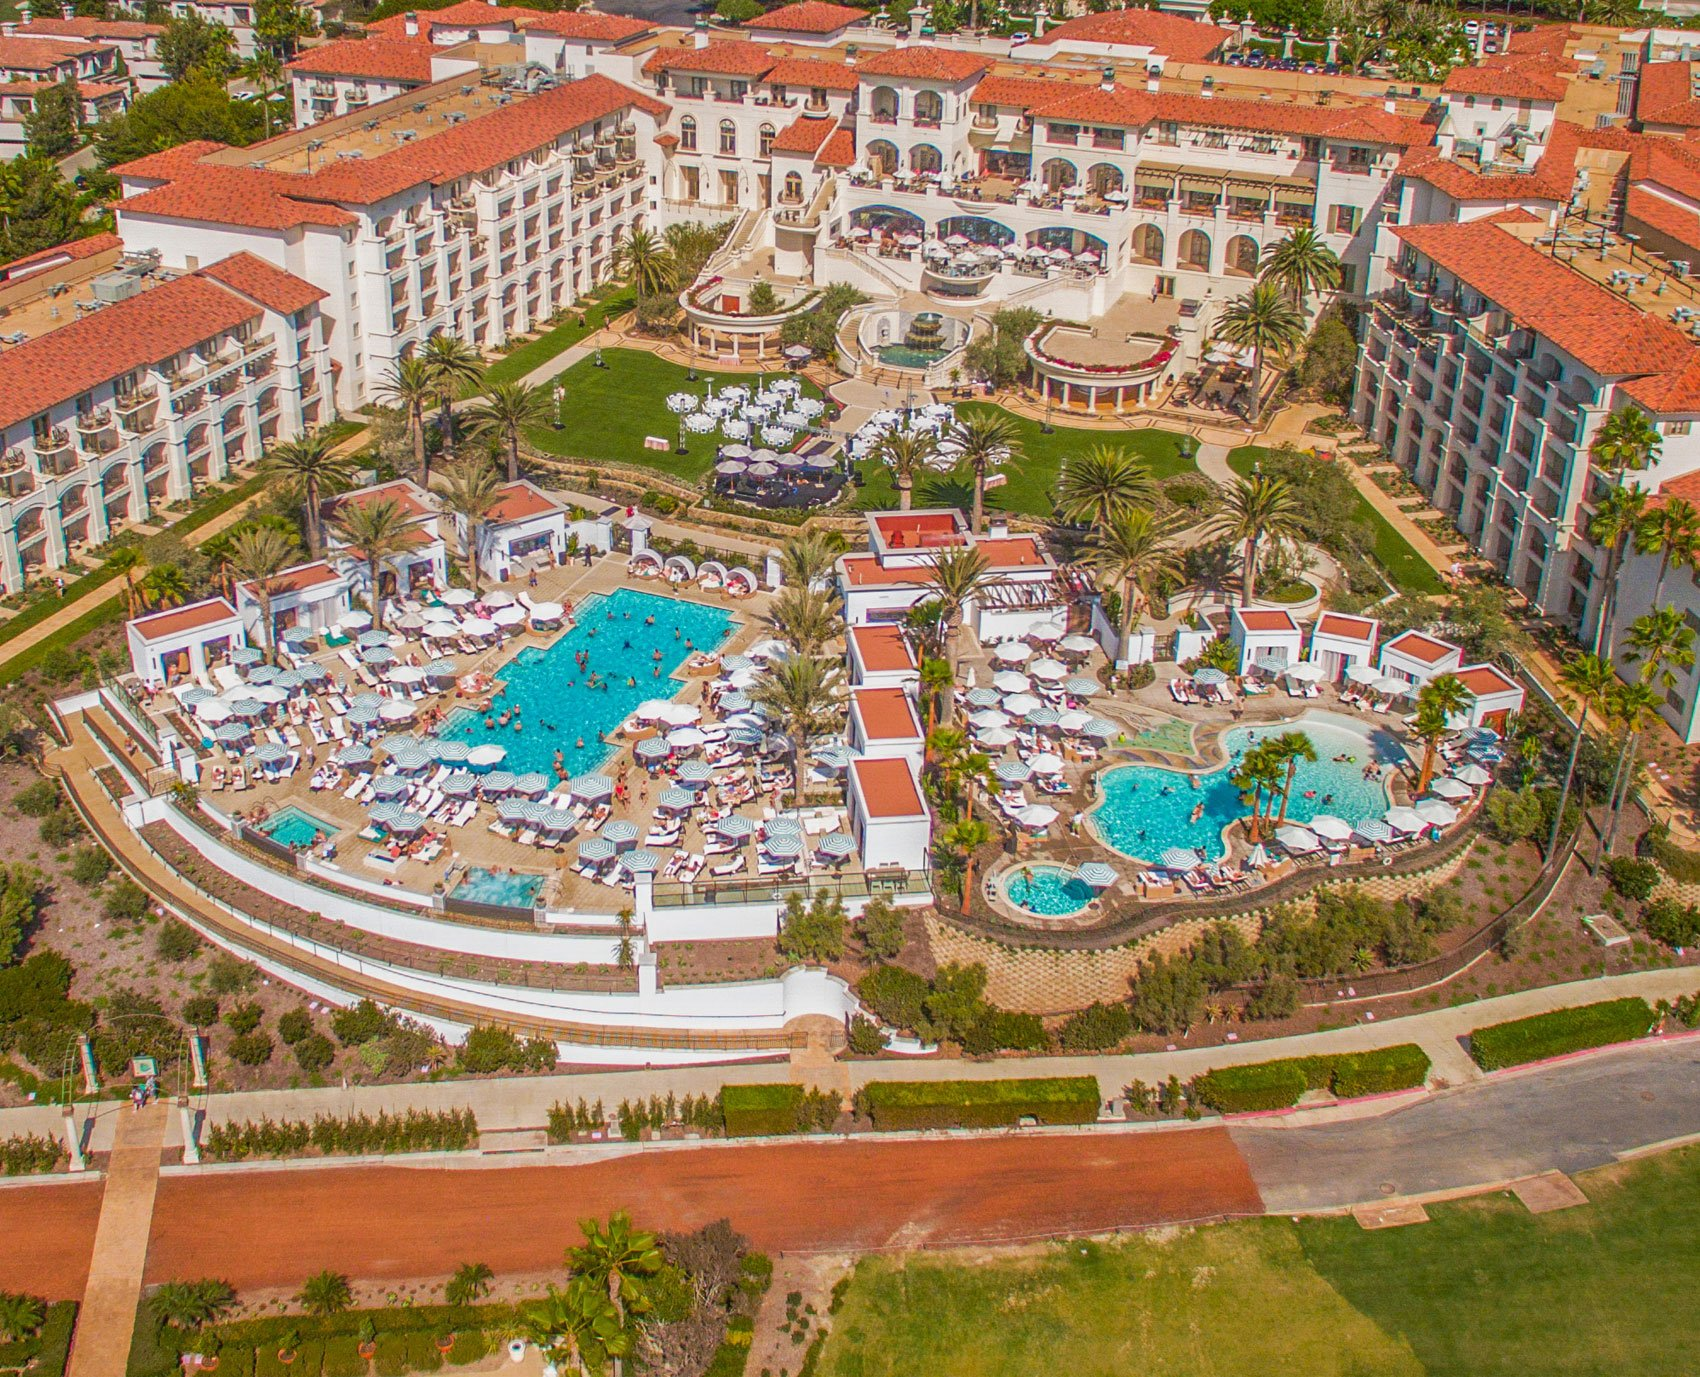 Residency perks include Elite Membership to the Monarch Beach Resort, including its fitness center, day spa, and resort pools; the Monarch Bay Club, offering superior beachfront dining and beach host service; and, Crown Club Membership at the 18-hole oceanfront Monarch Beach Golf Links.